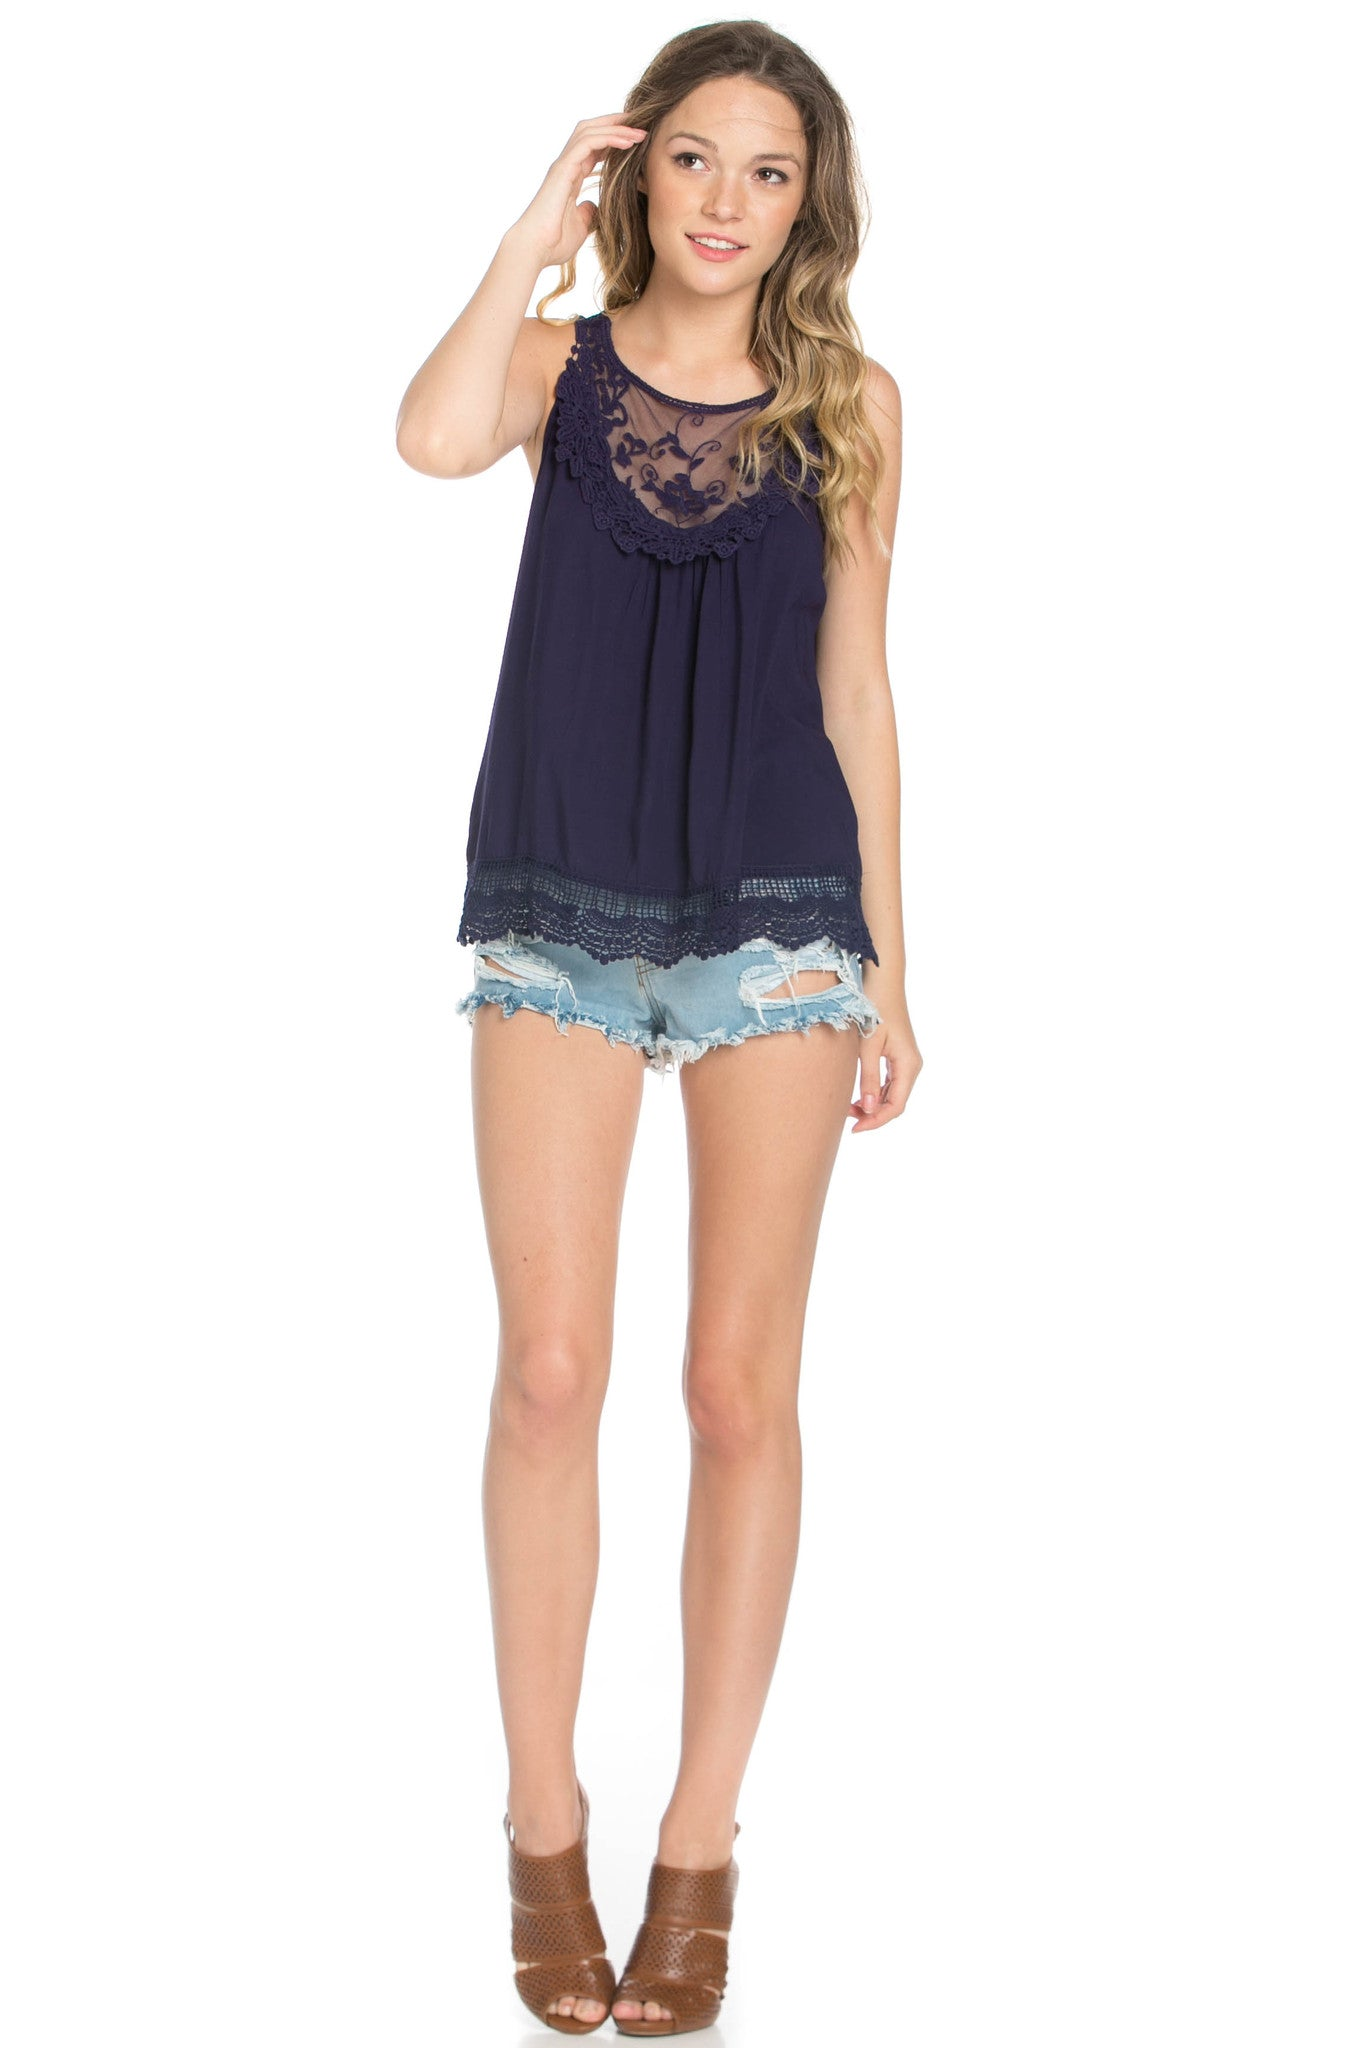 Crochets and Lace Navy Top - Tops - My Yuccie - 5